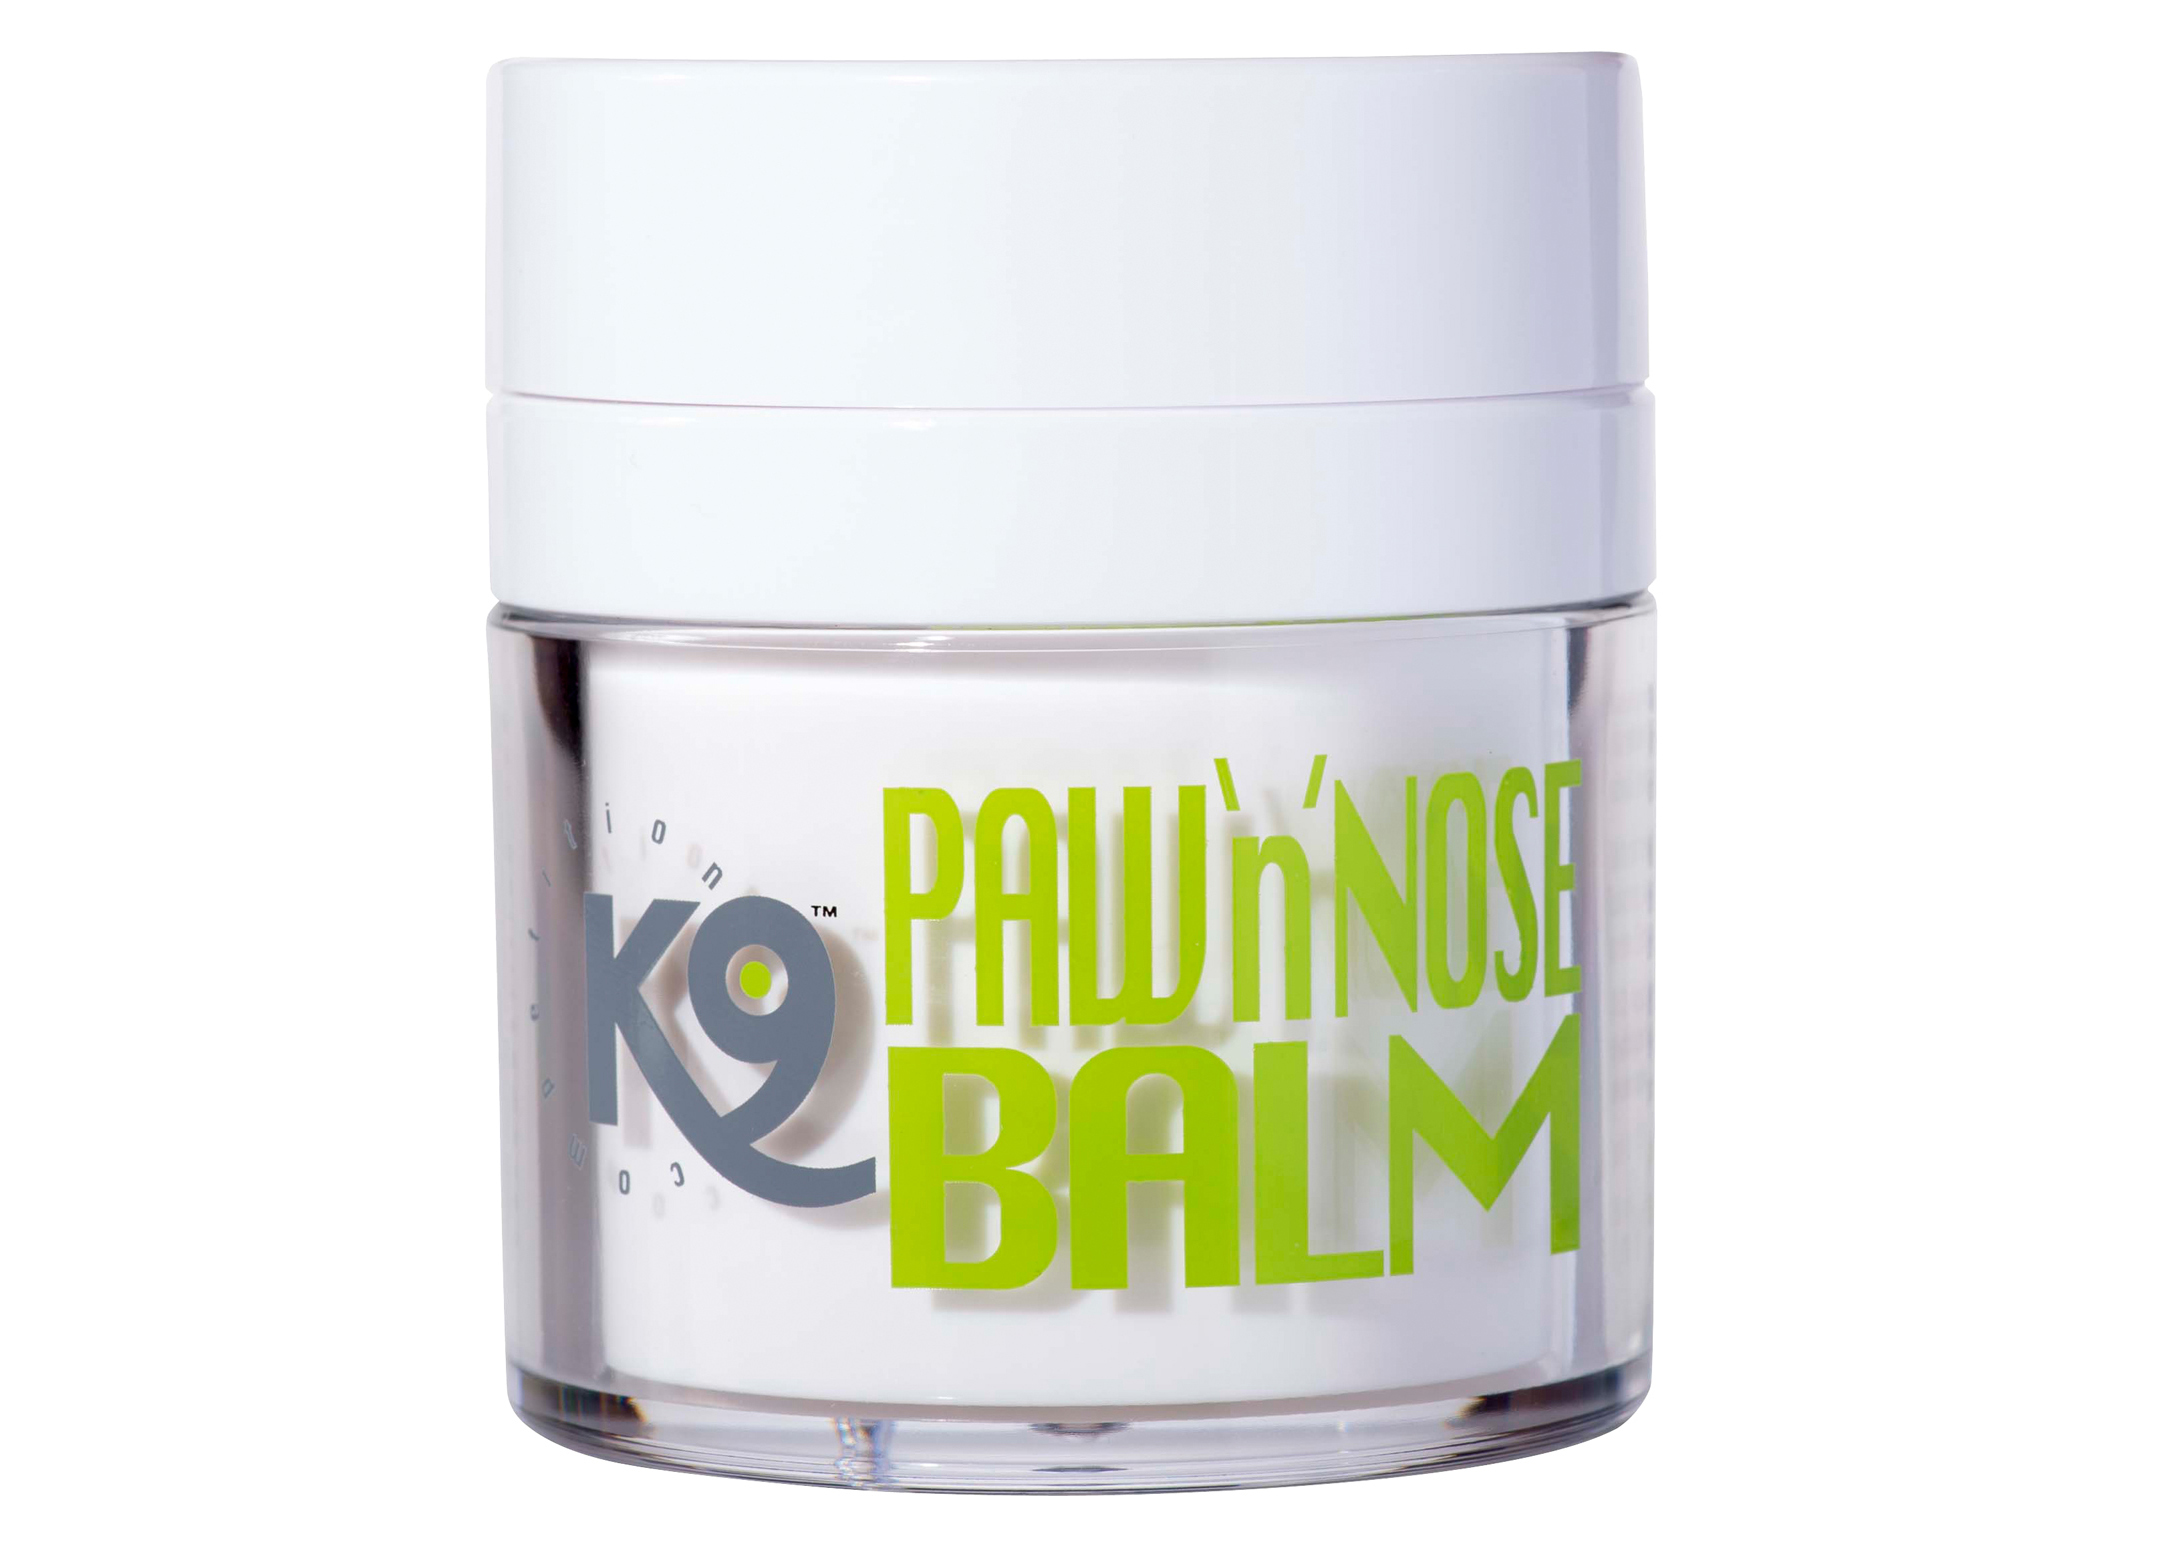 K9 Paw 'n' Nose Balm 50ml